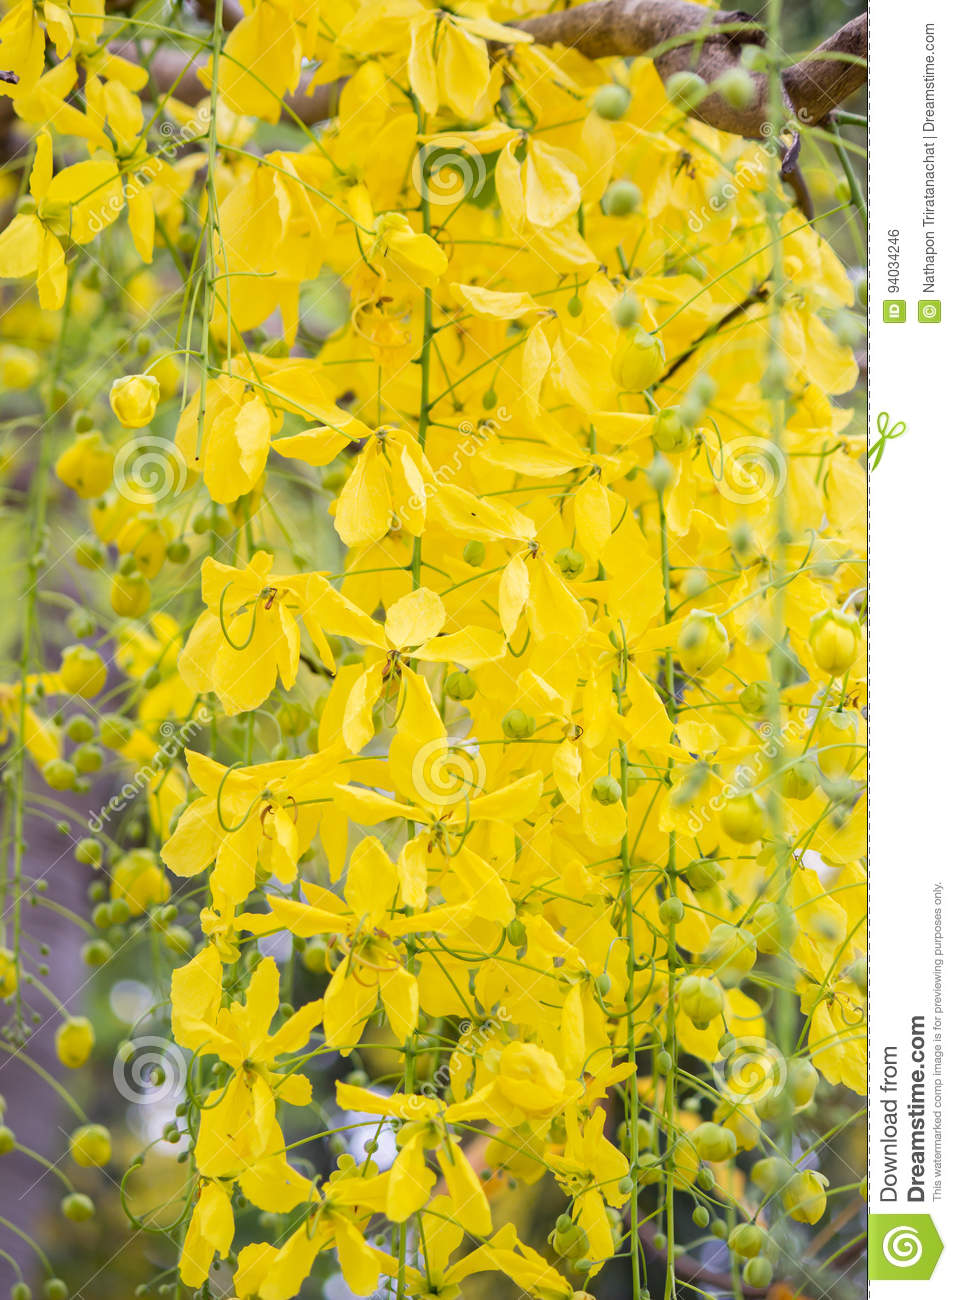 Bright Yellow Flowers Of Cassia Fistulagolden Shower Tree In Bloom